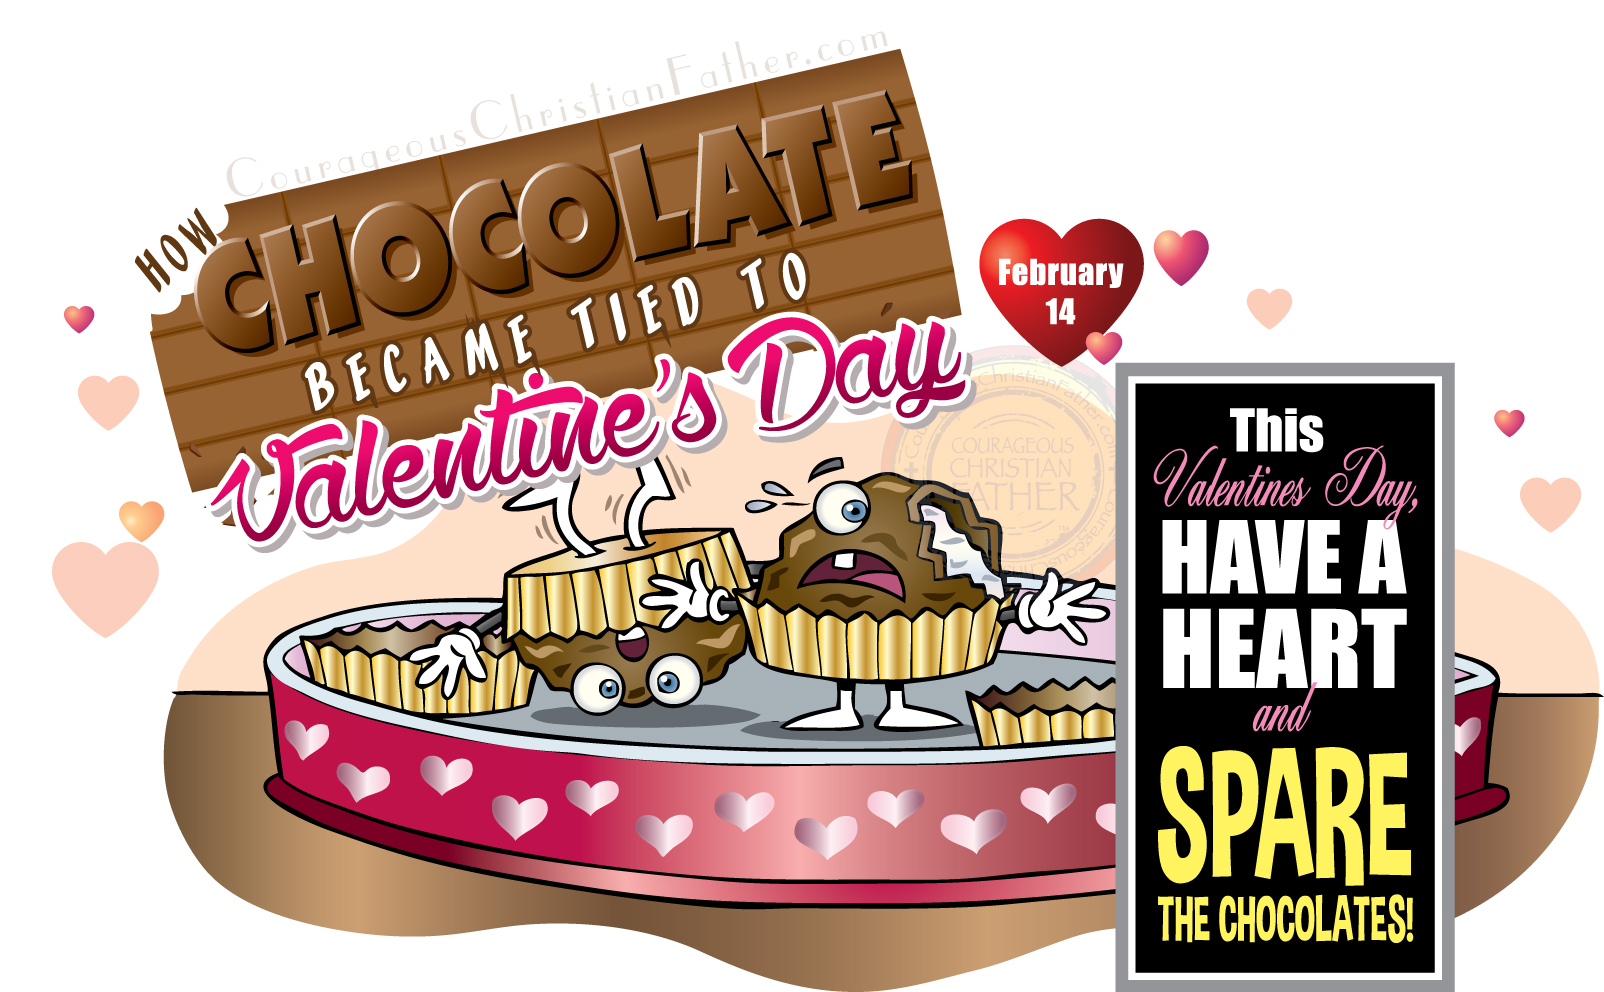 How Chocolate Became Tied to Valentine's Day